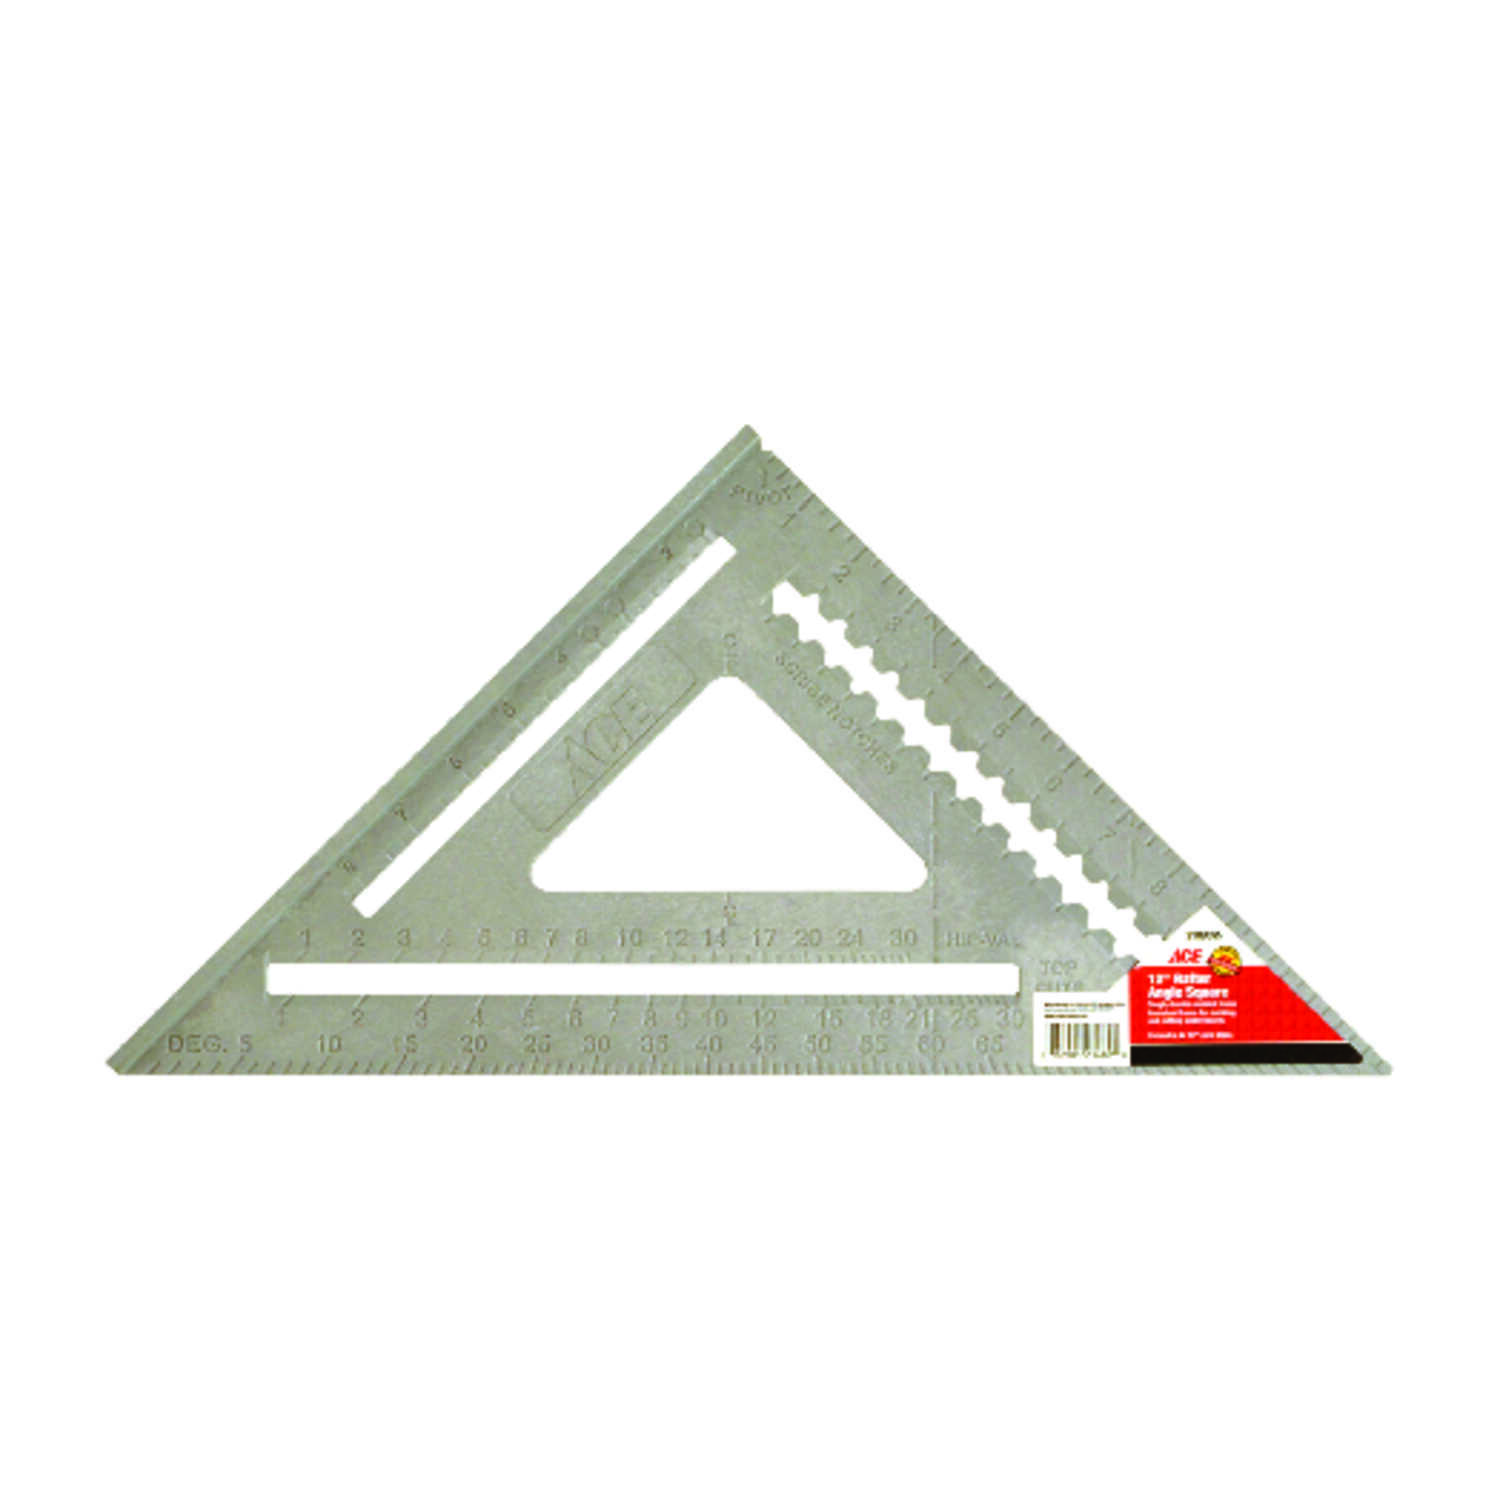 Ace  12 in. L x 17 in. H ABS Plastic  Rafter Square  Gray